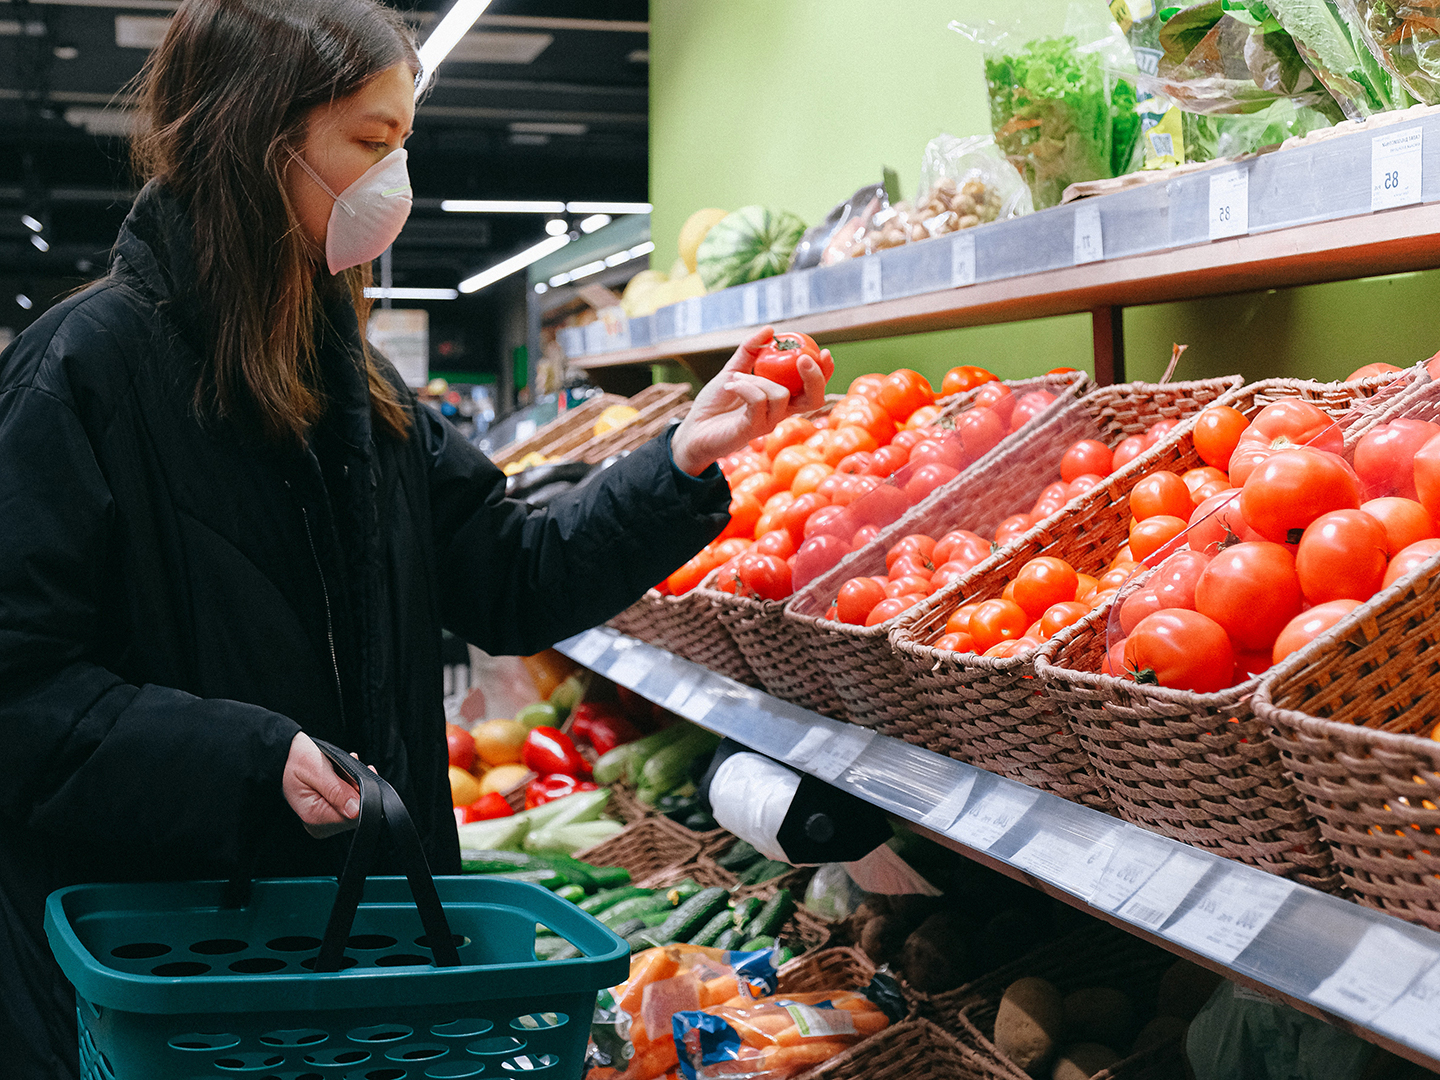 Young woman at supermarket wears protective mask during coronavirus